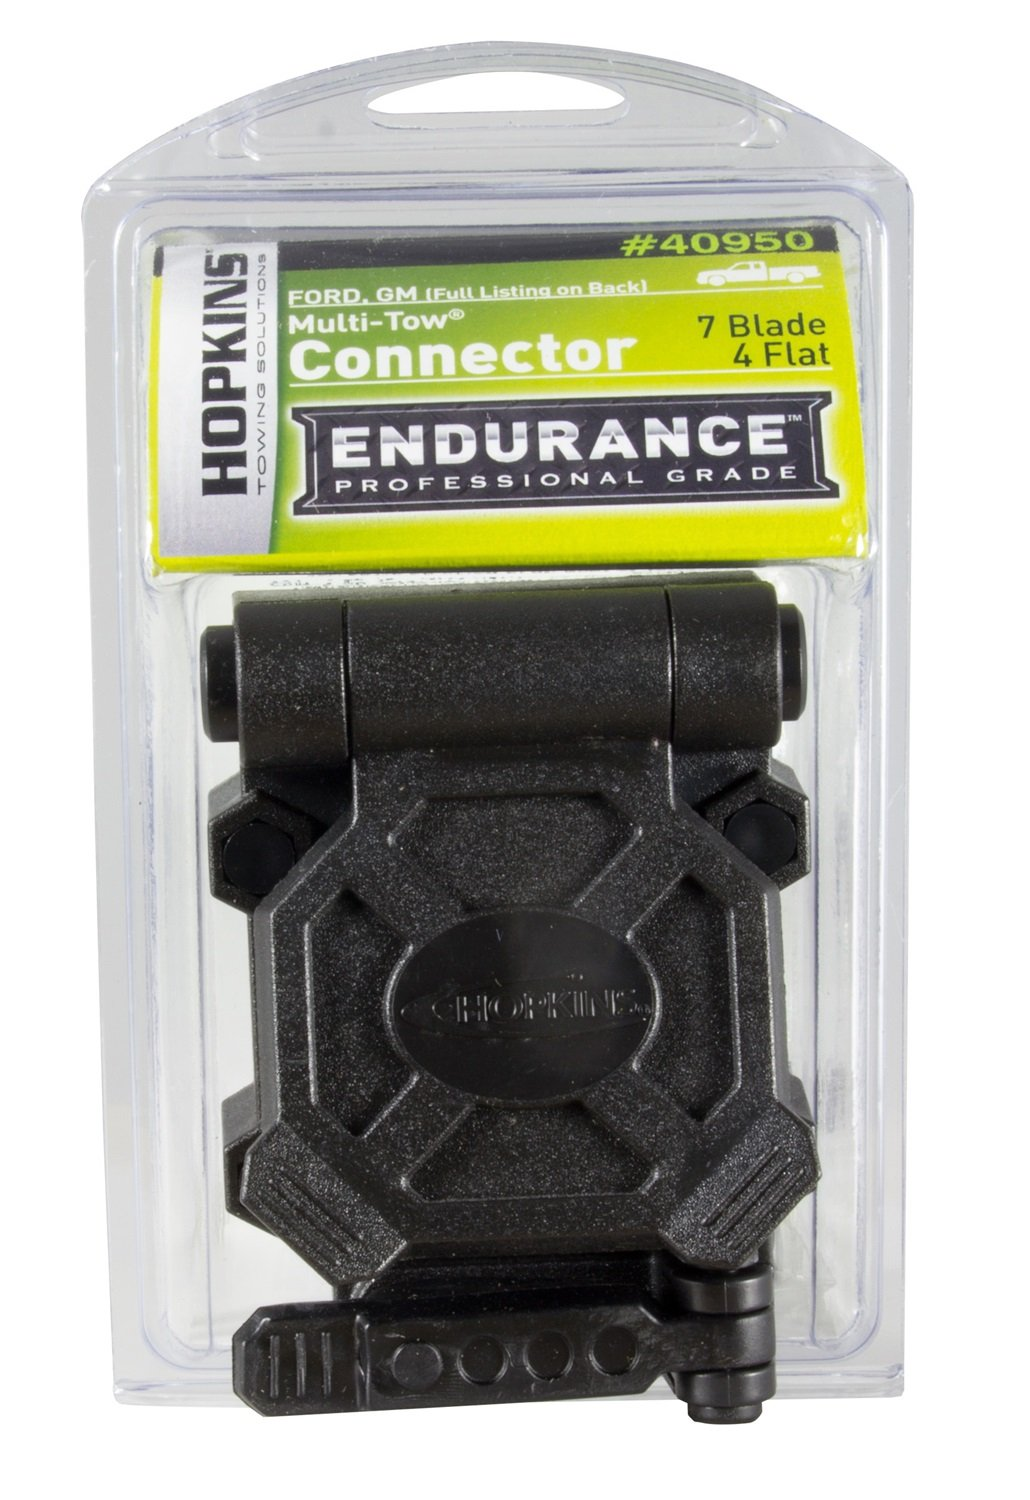 Endurance Hopkins 40950 Multi Tow 7 Blade And 4 Flat Pin Car Truck Connectors 2539 Trailer Wiring Harness Kit Buy Vehicle Automotive